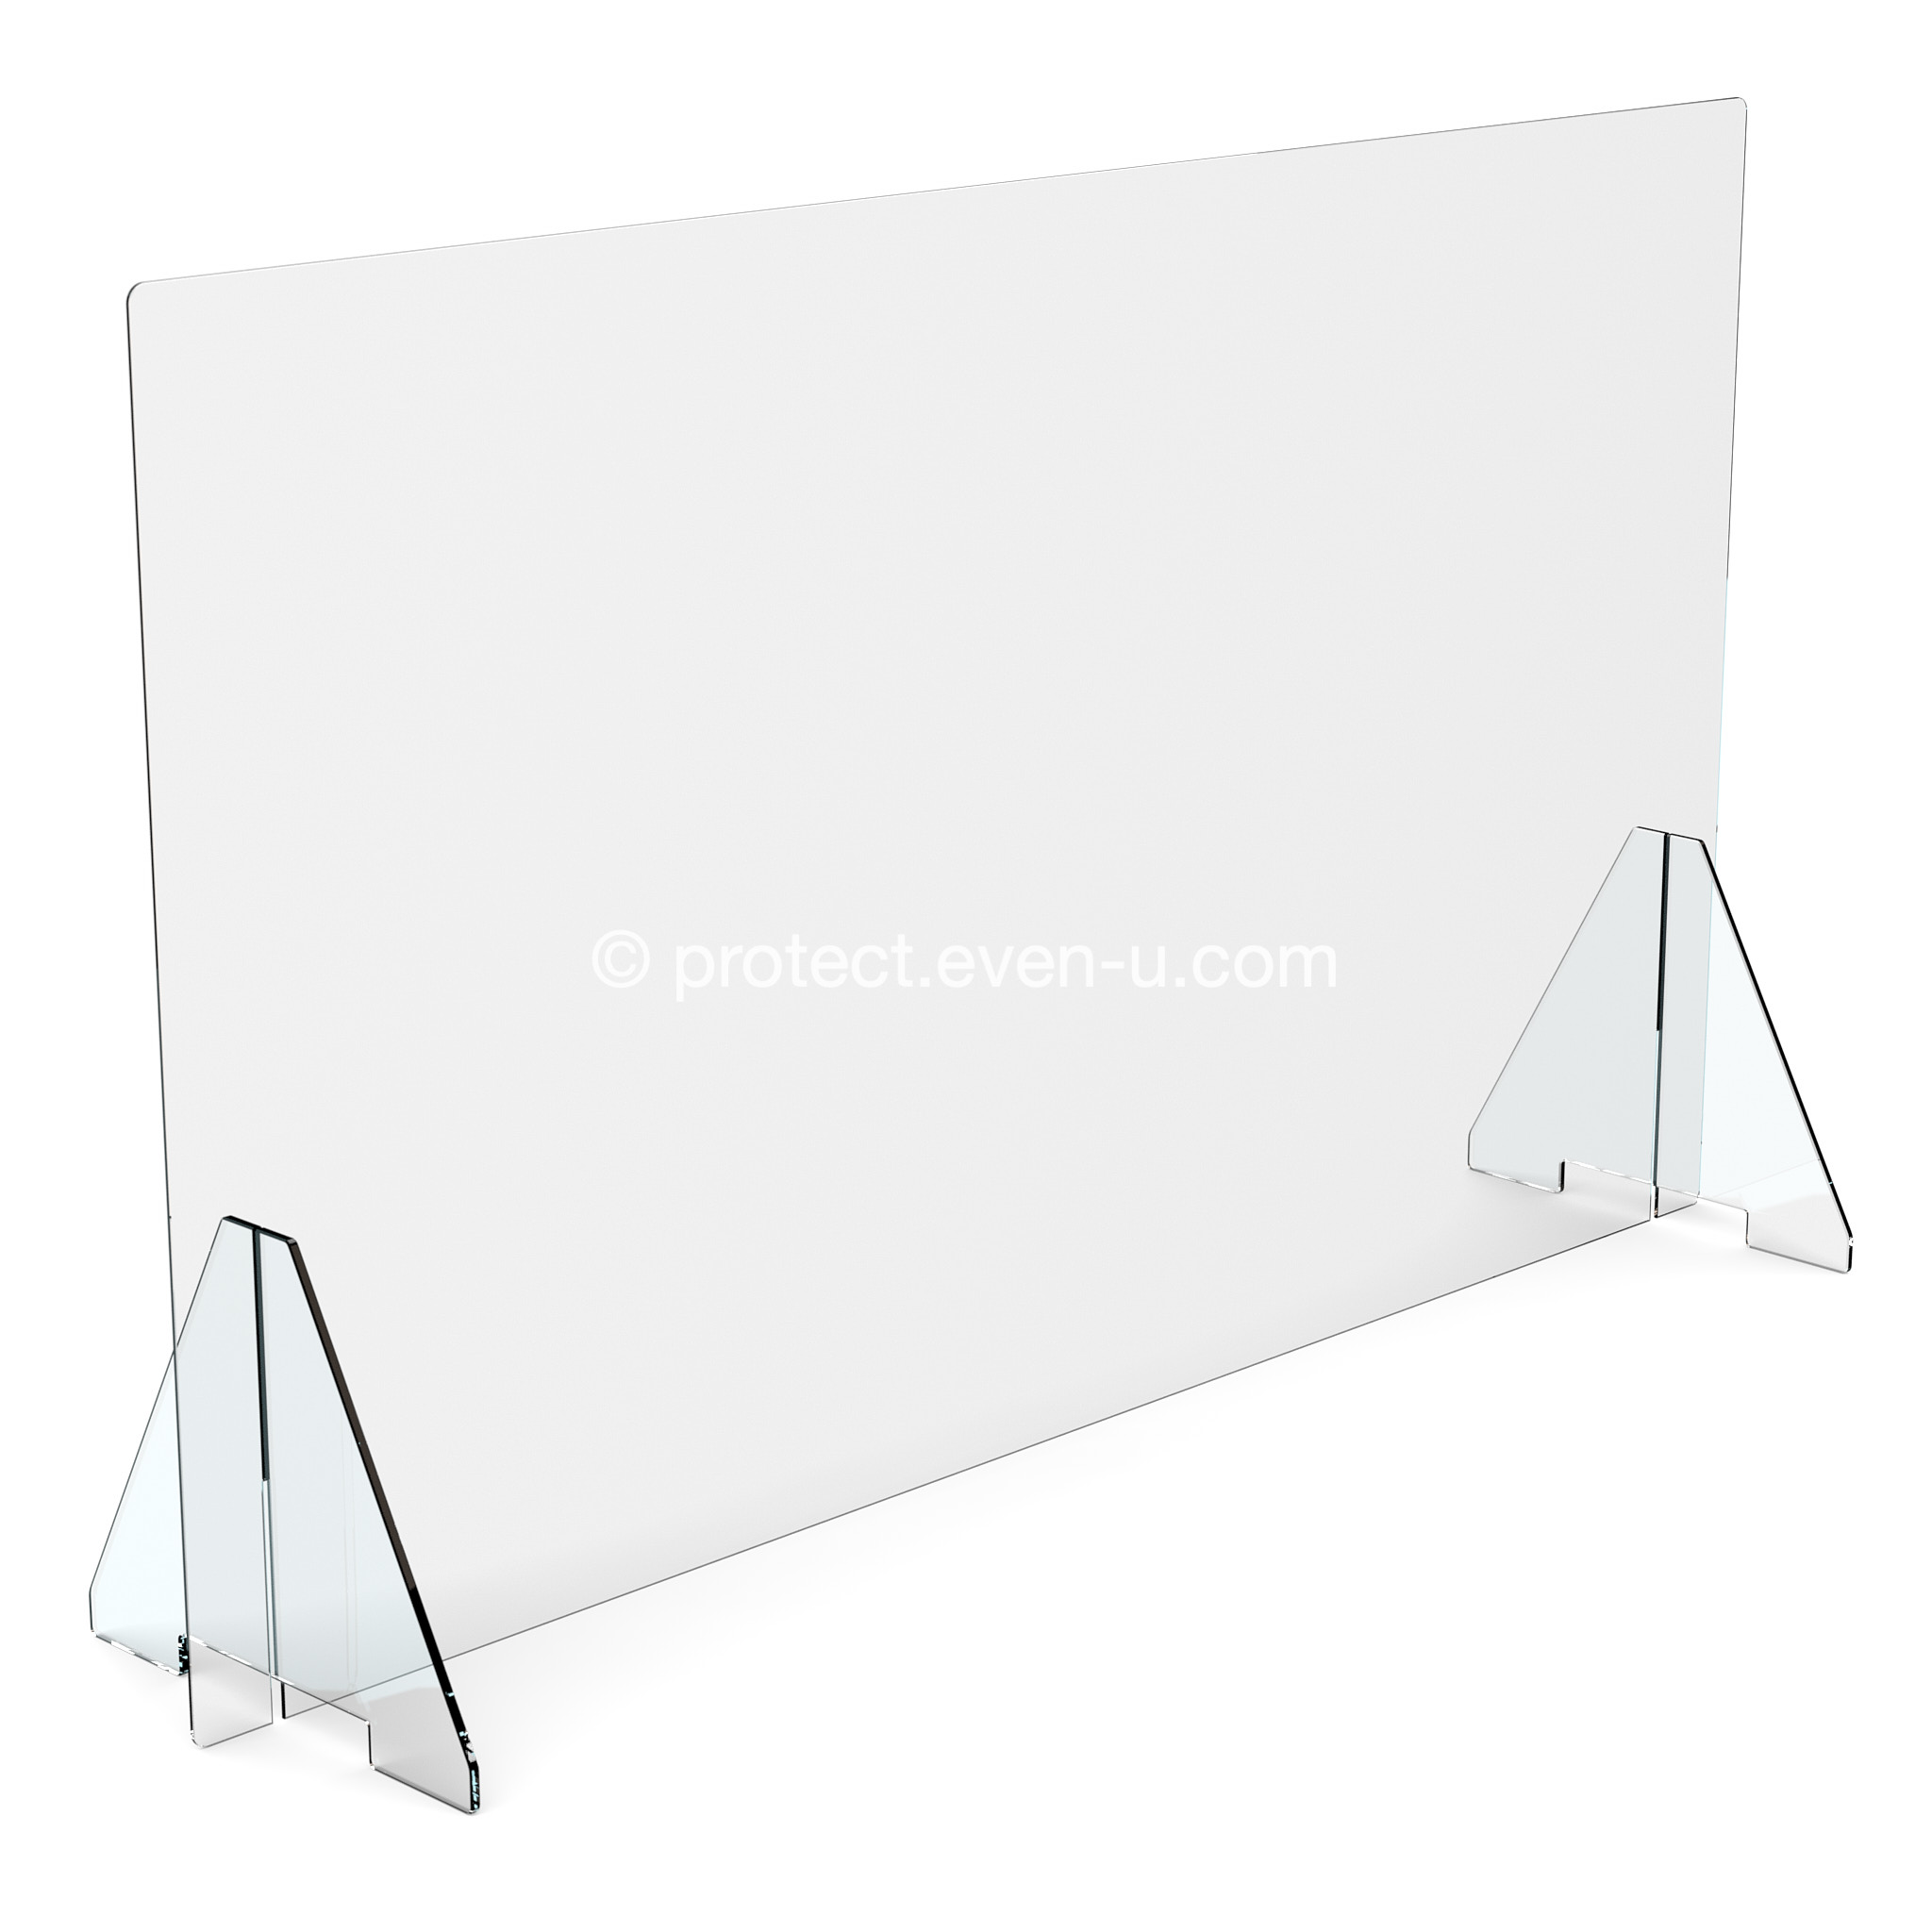 Shop Image of the 120cm Plain Covid-19 Protection Screen